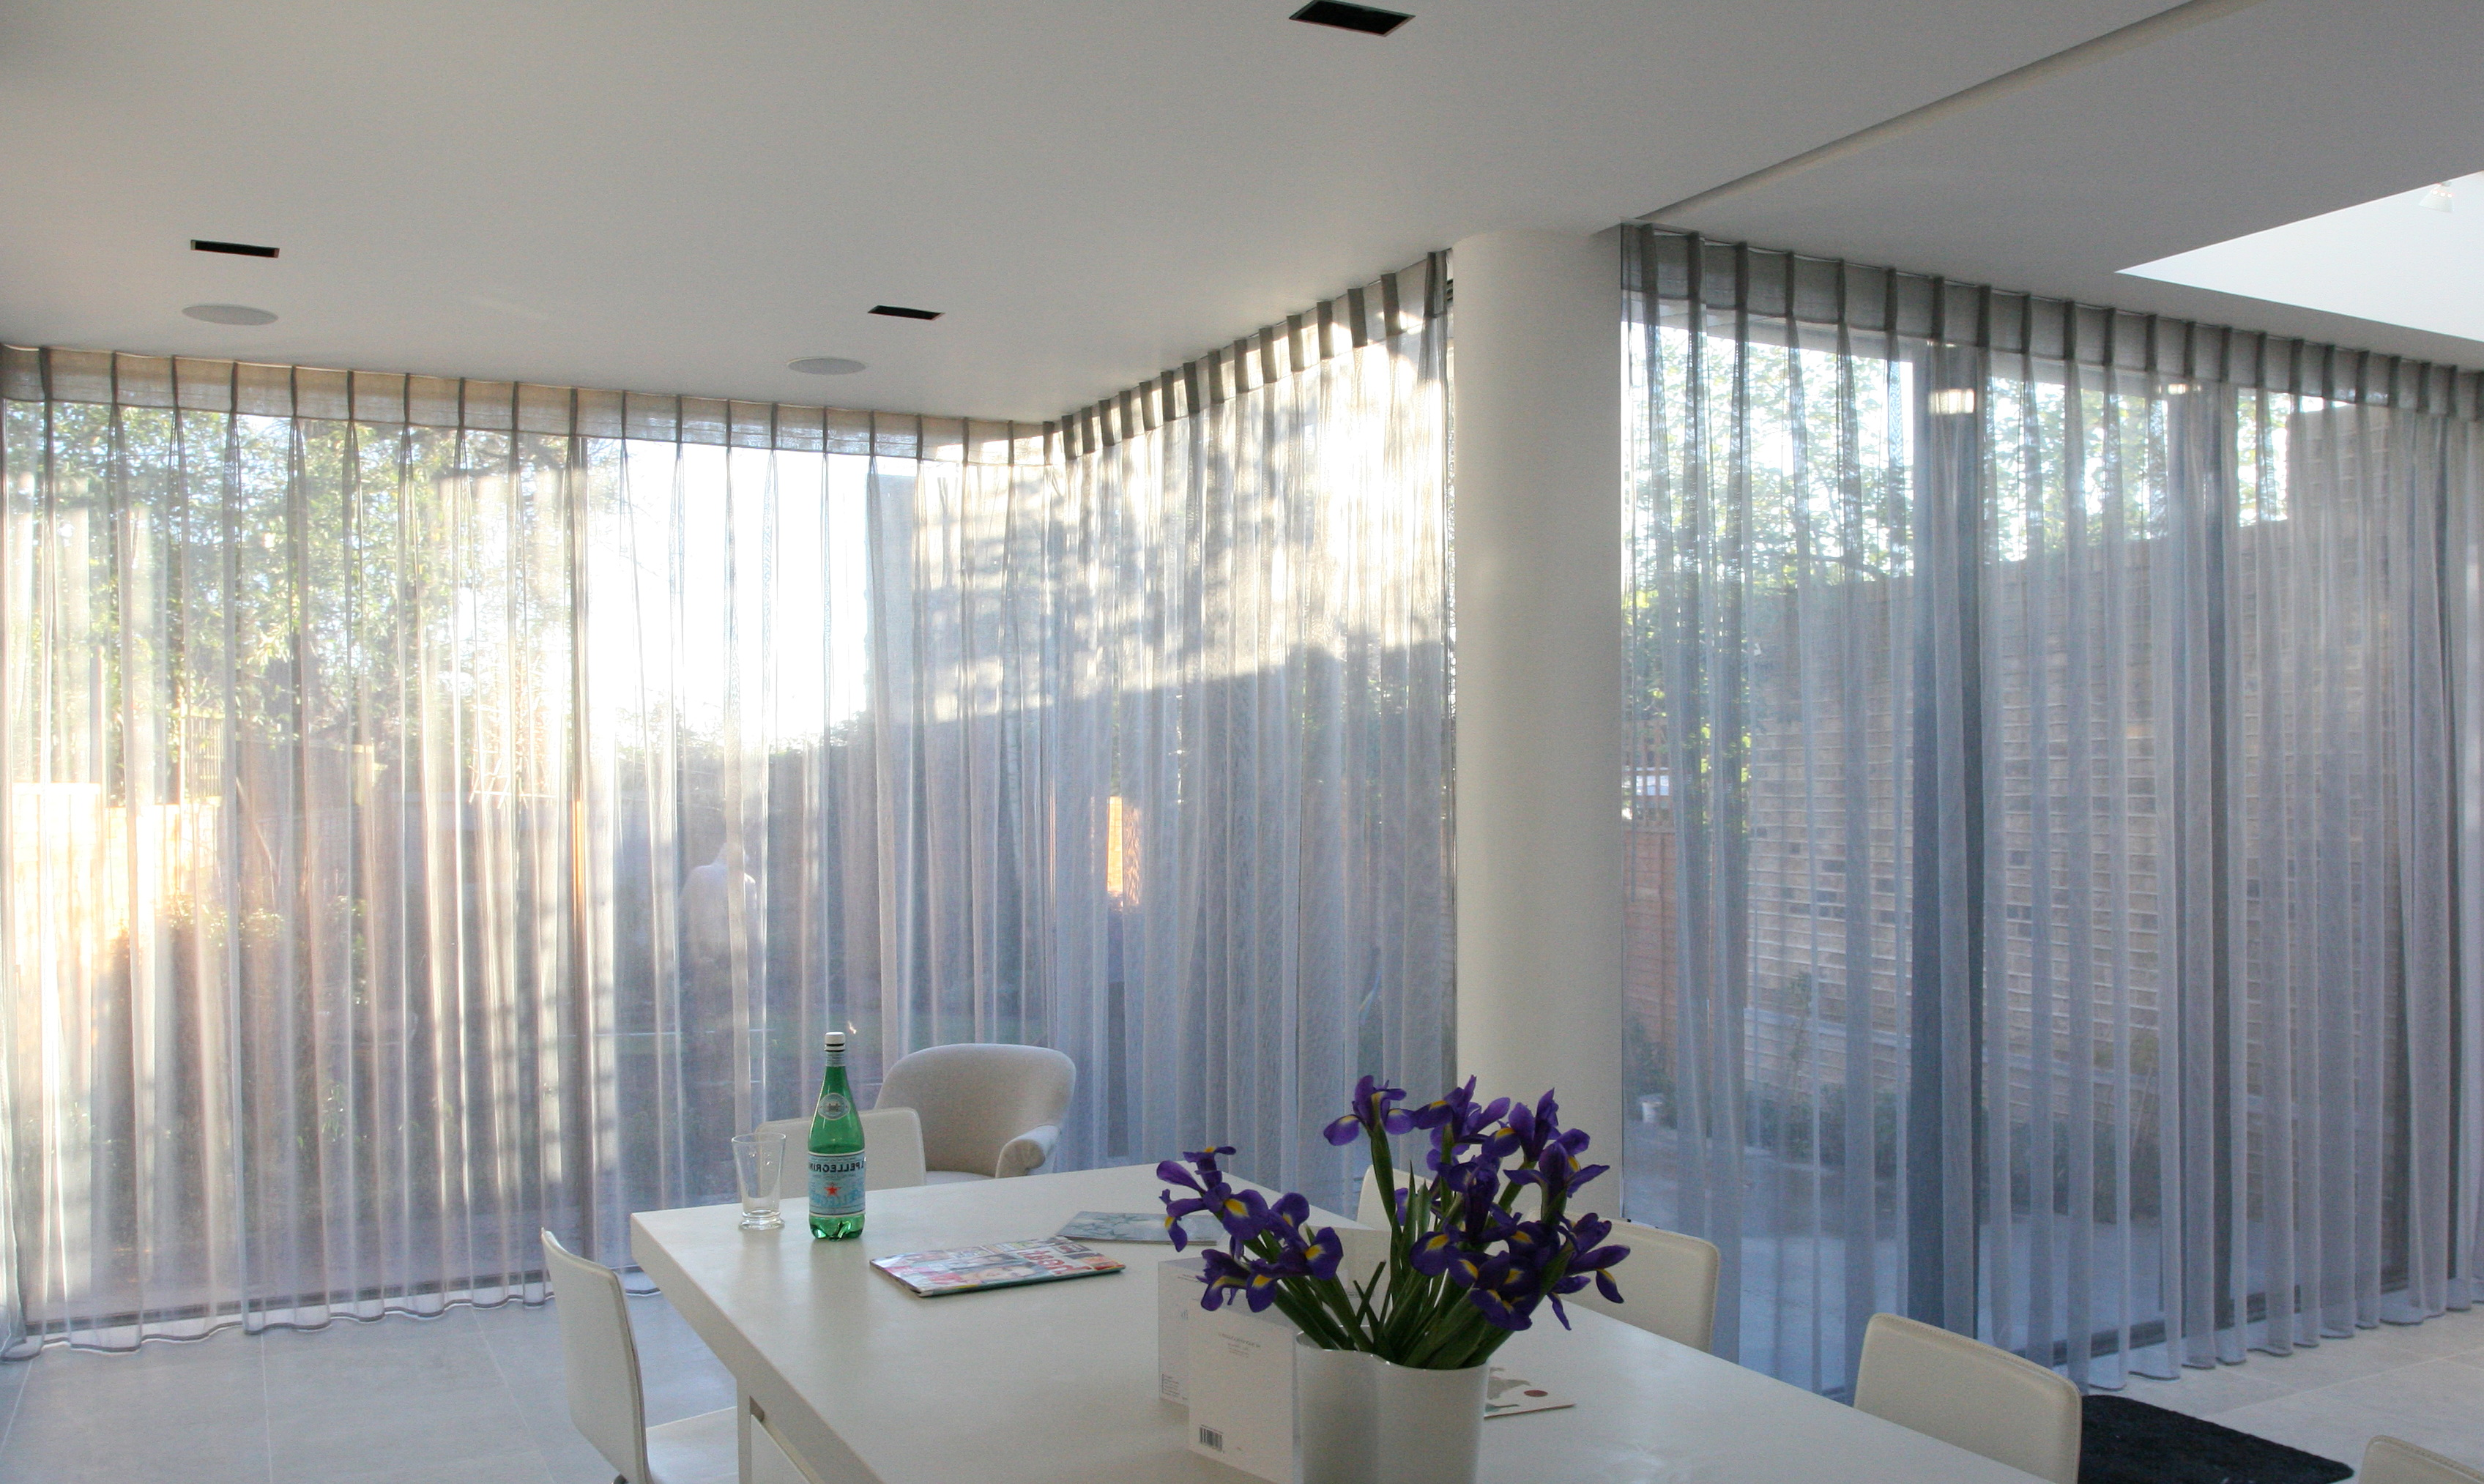 drapery do made room on blogs installation yourself guide loft curtain it track tracks curtains ceiling divider custom